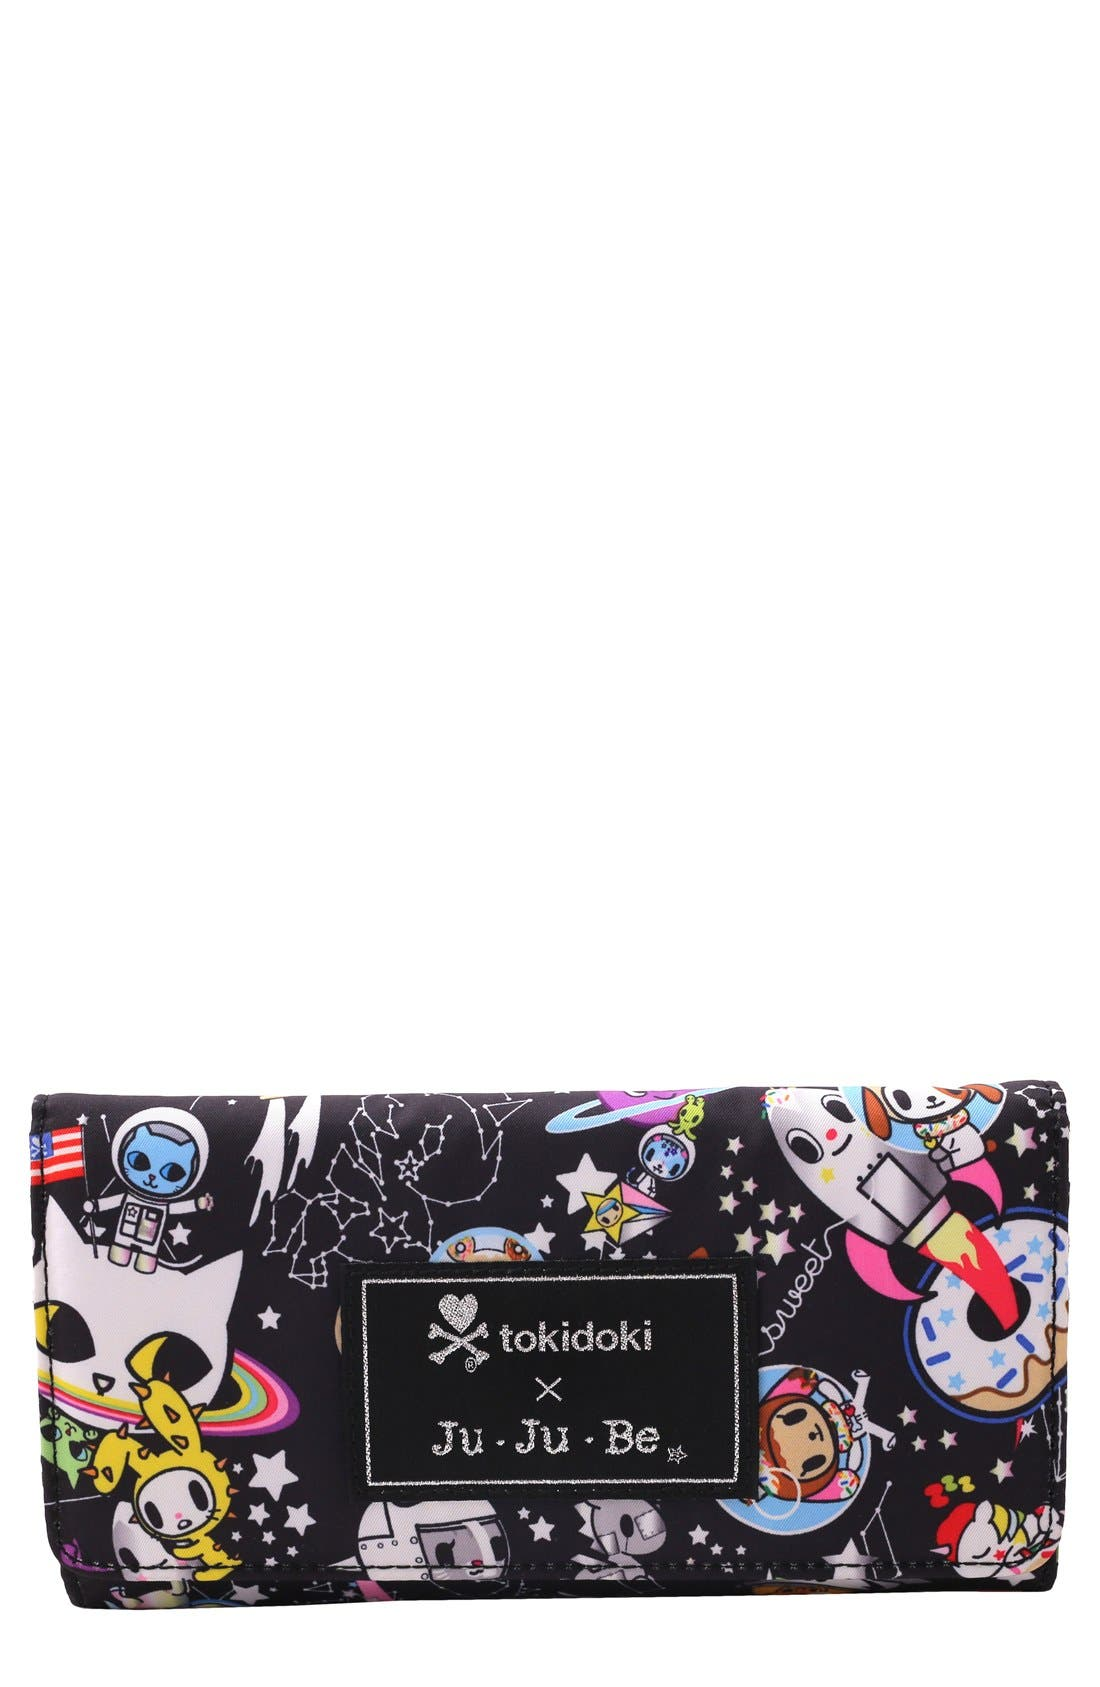 Alternate Image 1 Selected - Ju-Ju-Be x tokidoki Be Rich Trifold Clutch Wallet